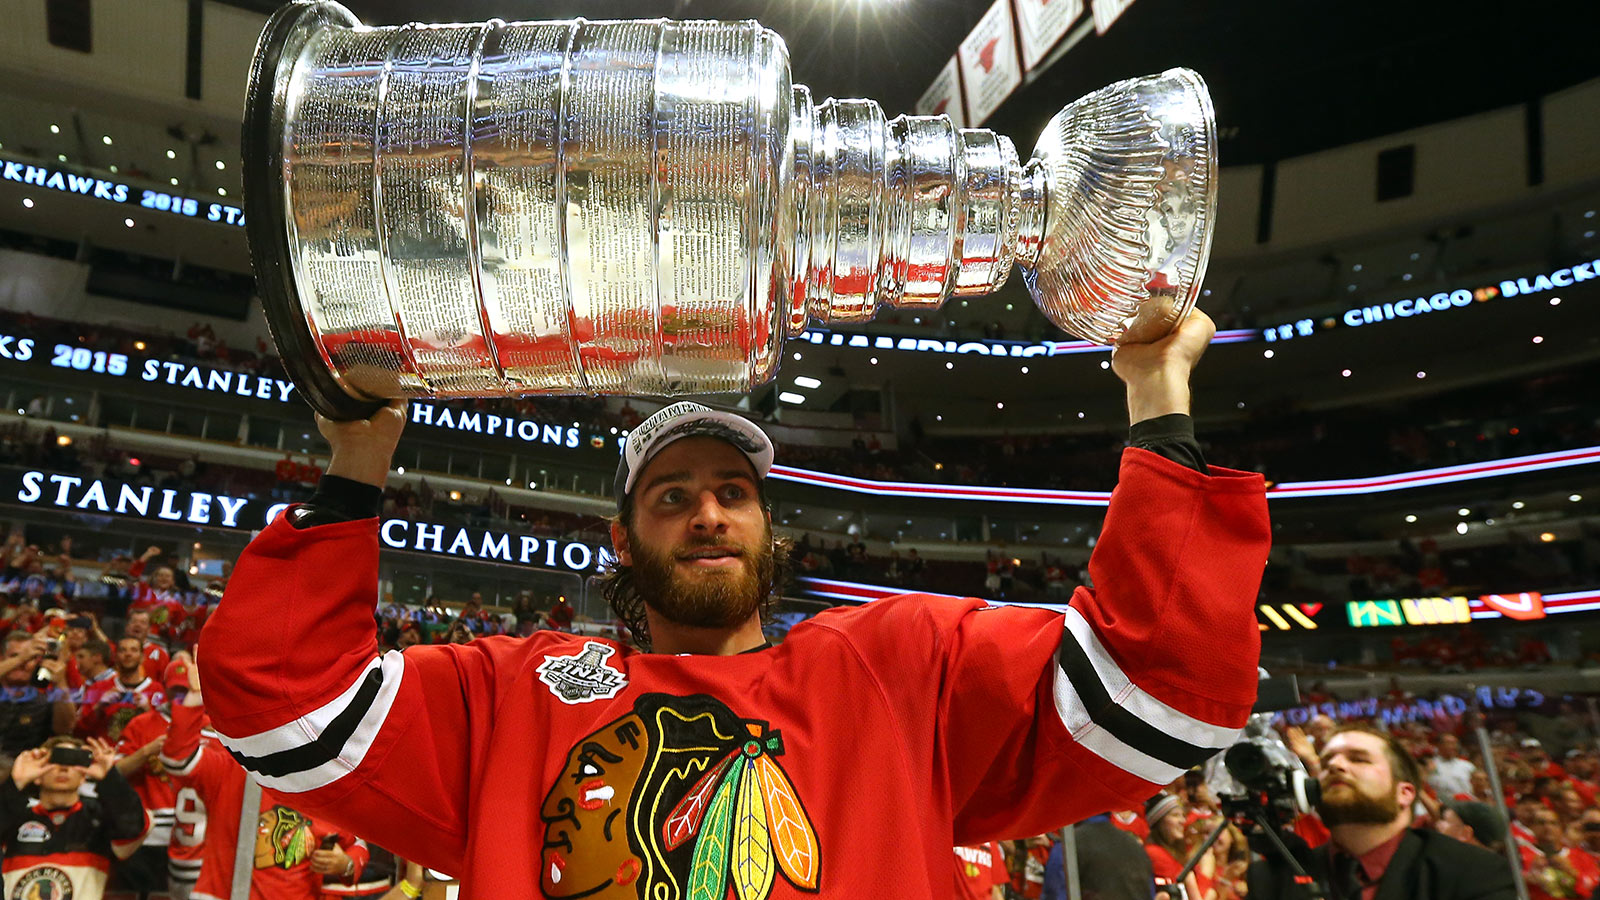 Blue Jackets acquire Saad in seven-player trade with Blackhawks